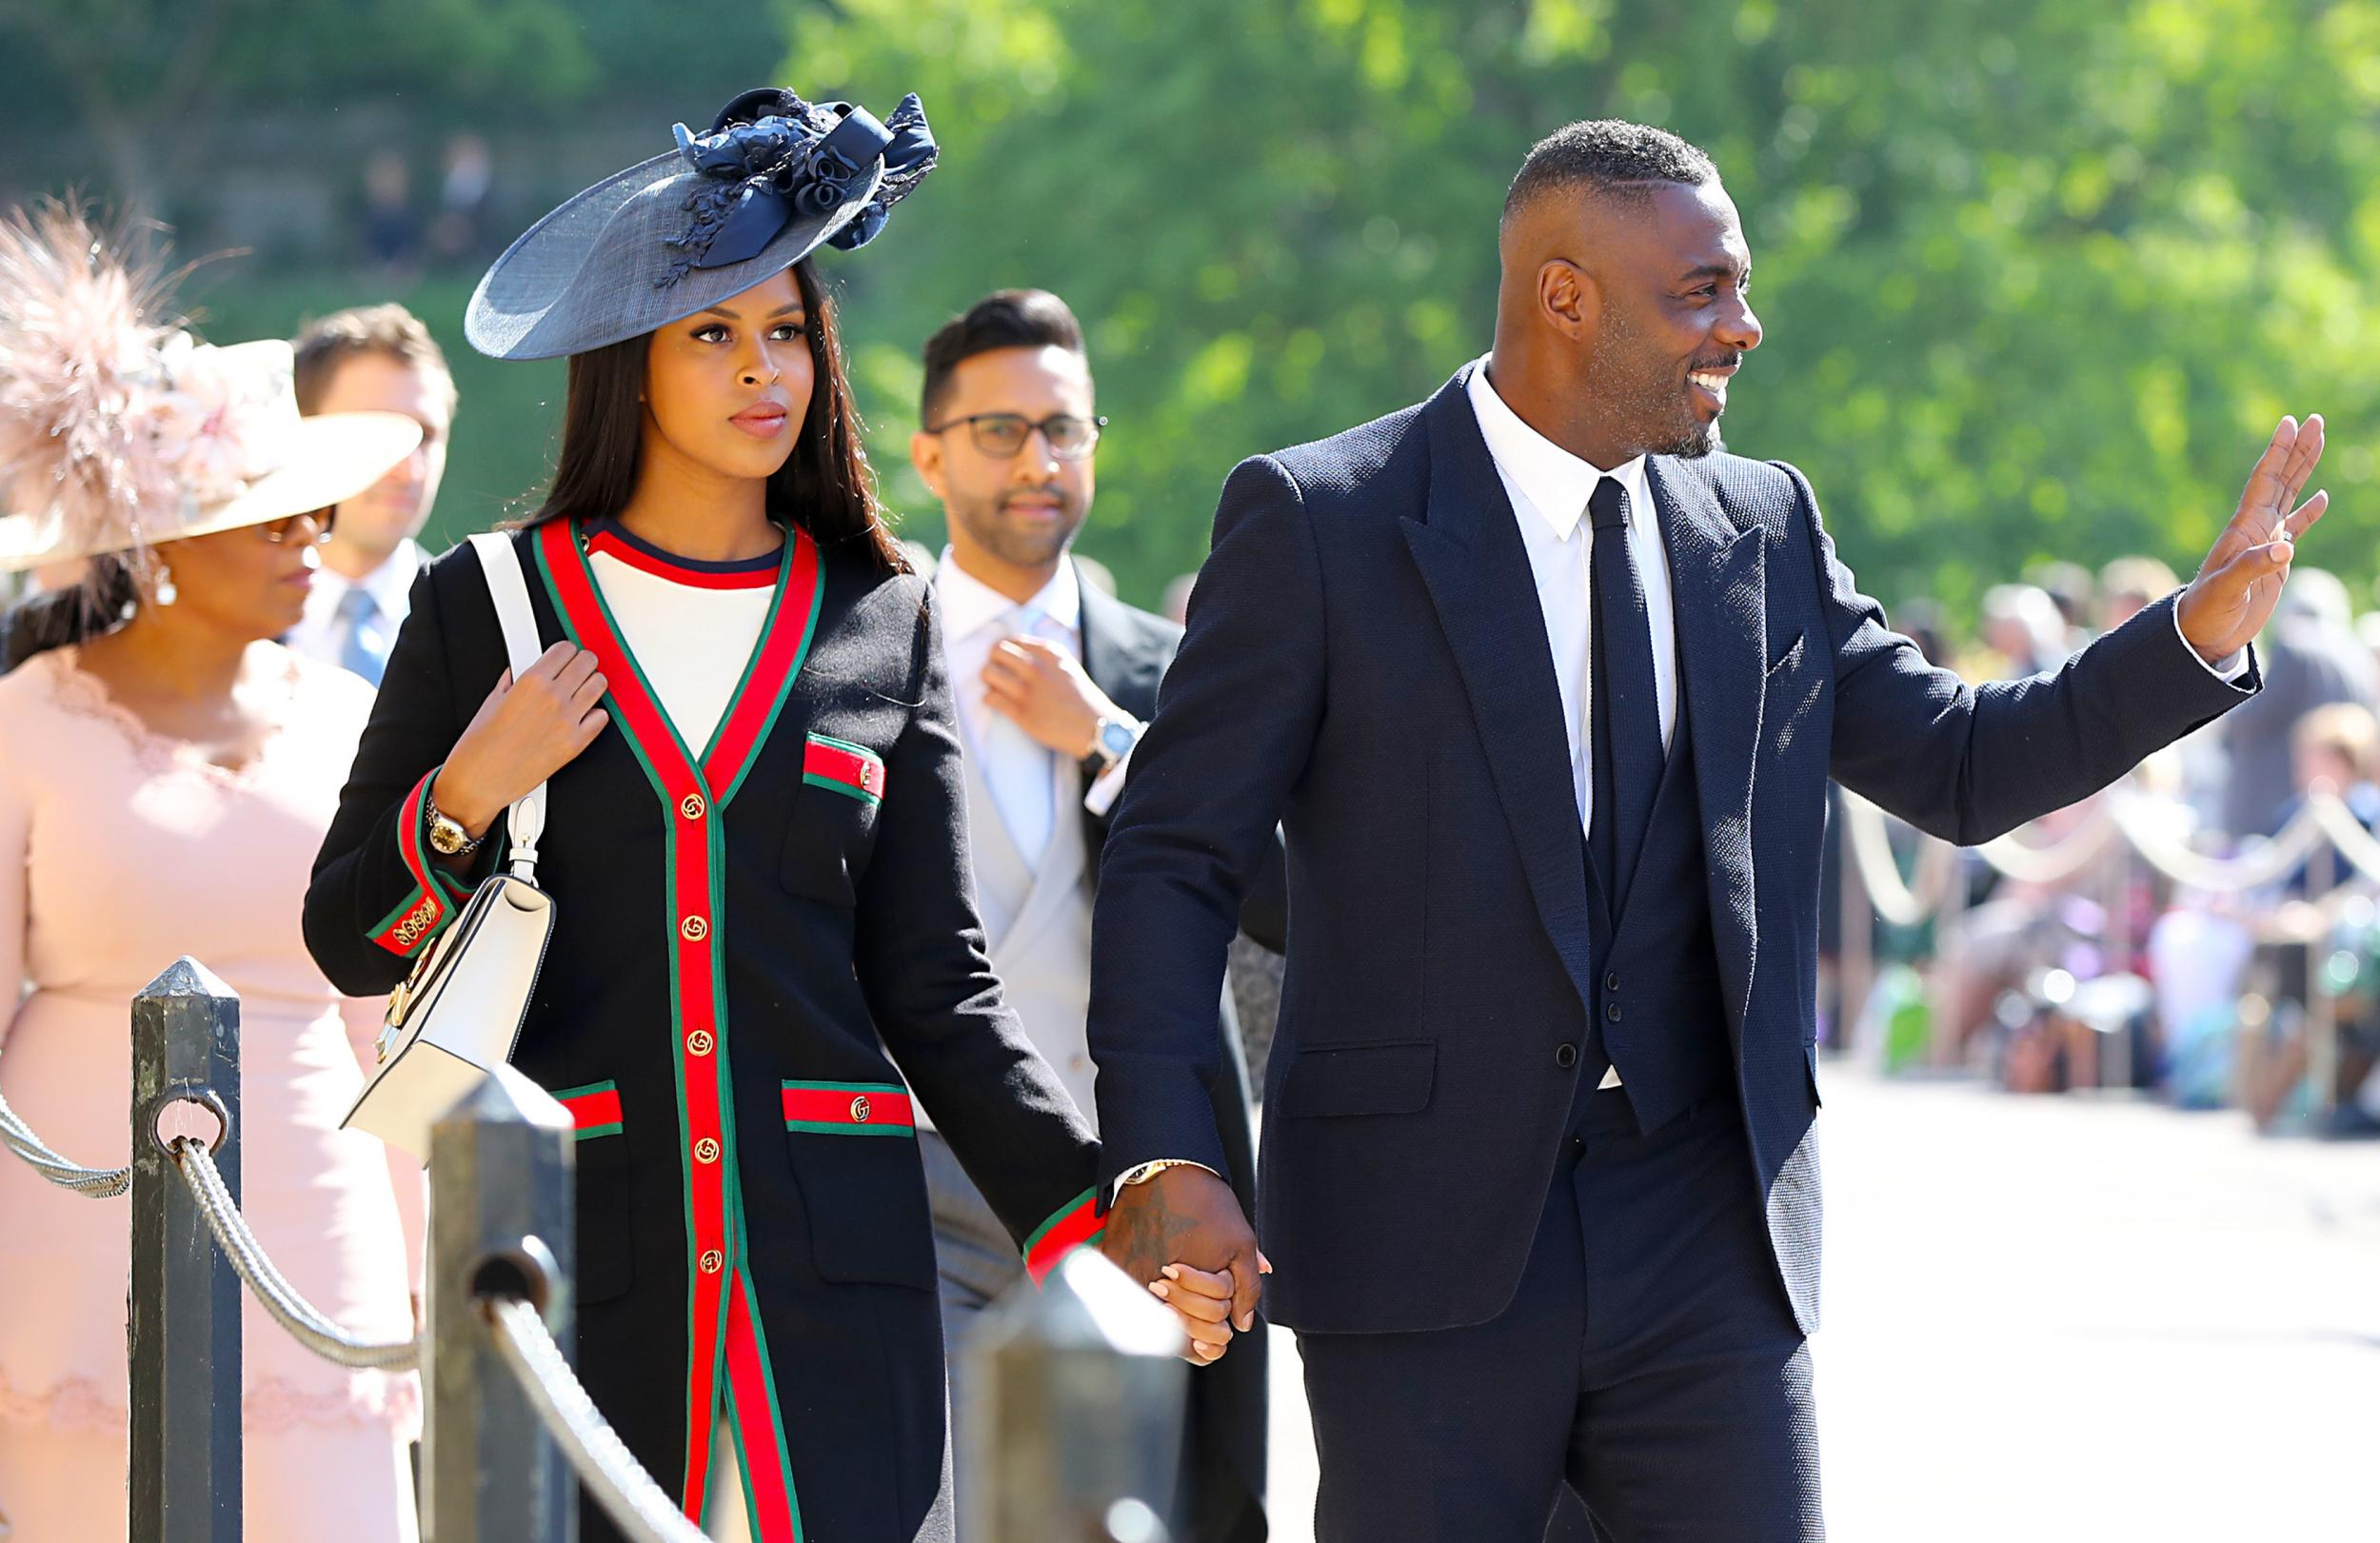 0d6c89dff9614 Royal wedding guests  Everyone who attended Meghan Markle and Prince  Harry s ceremony